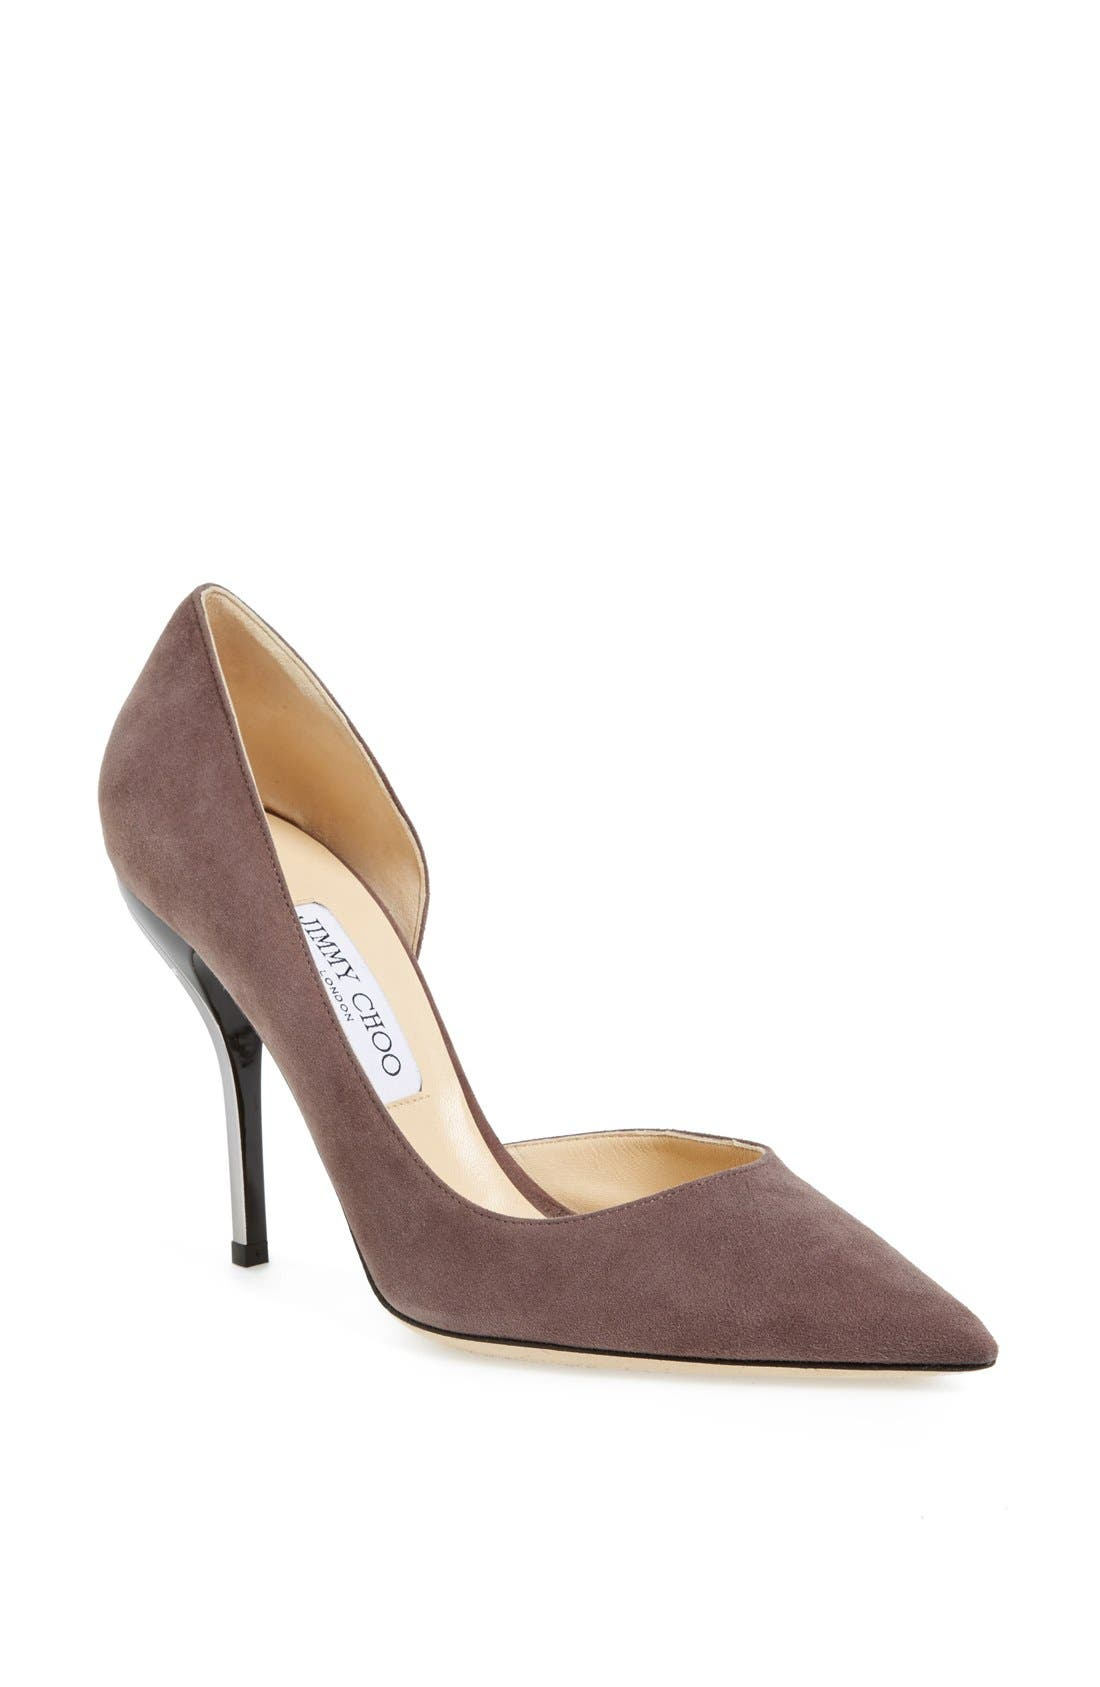 Main Image - Jimmy Choo 'Willis' Pump